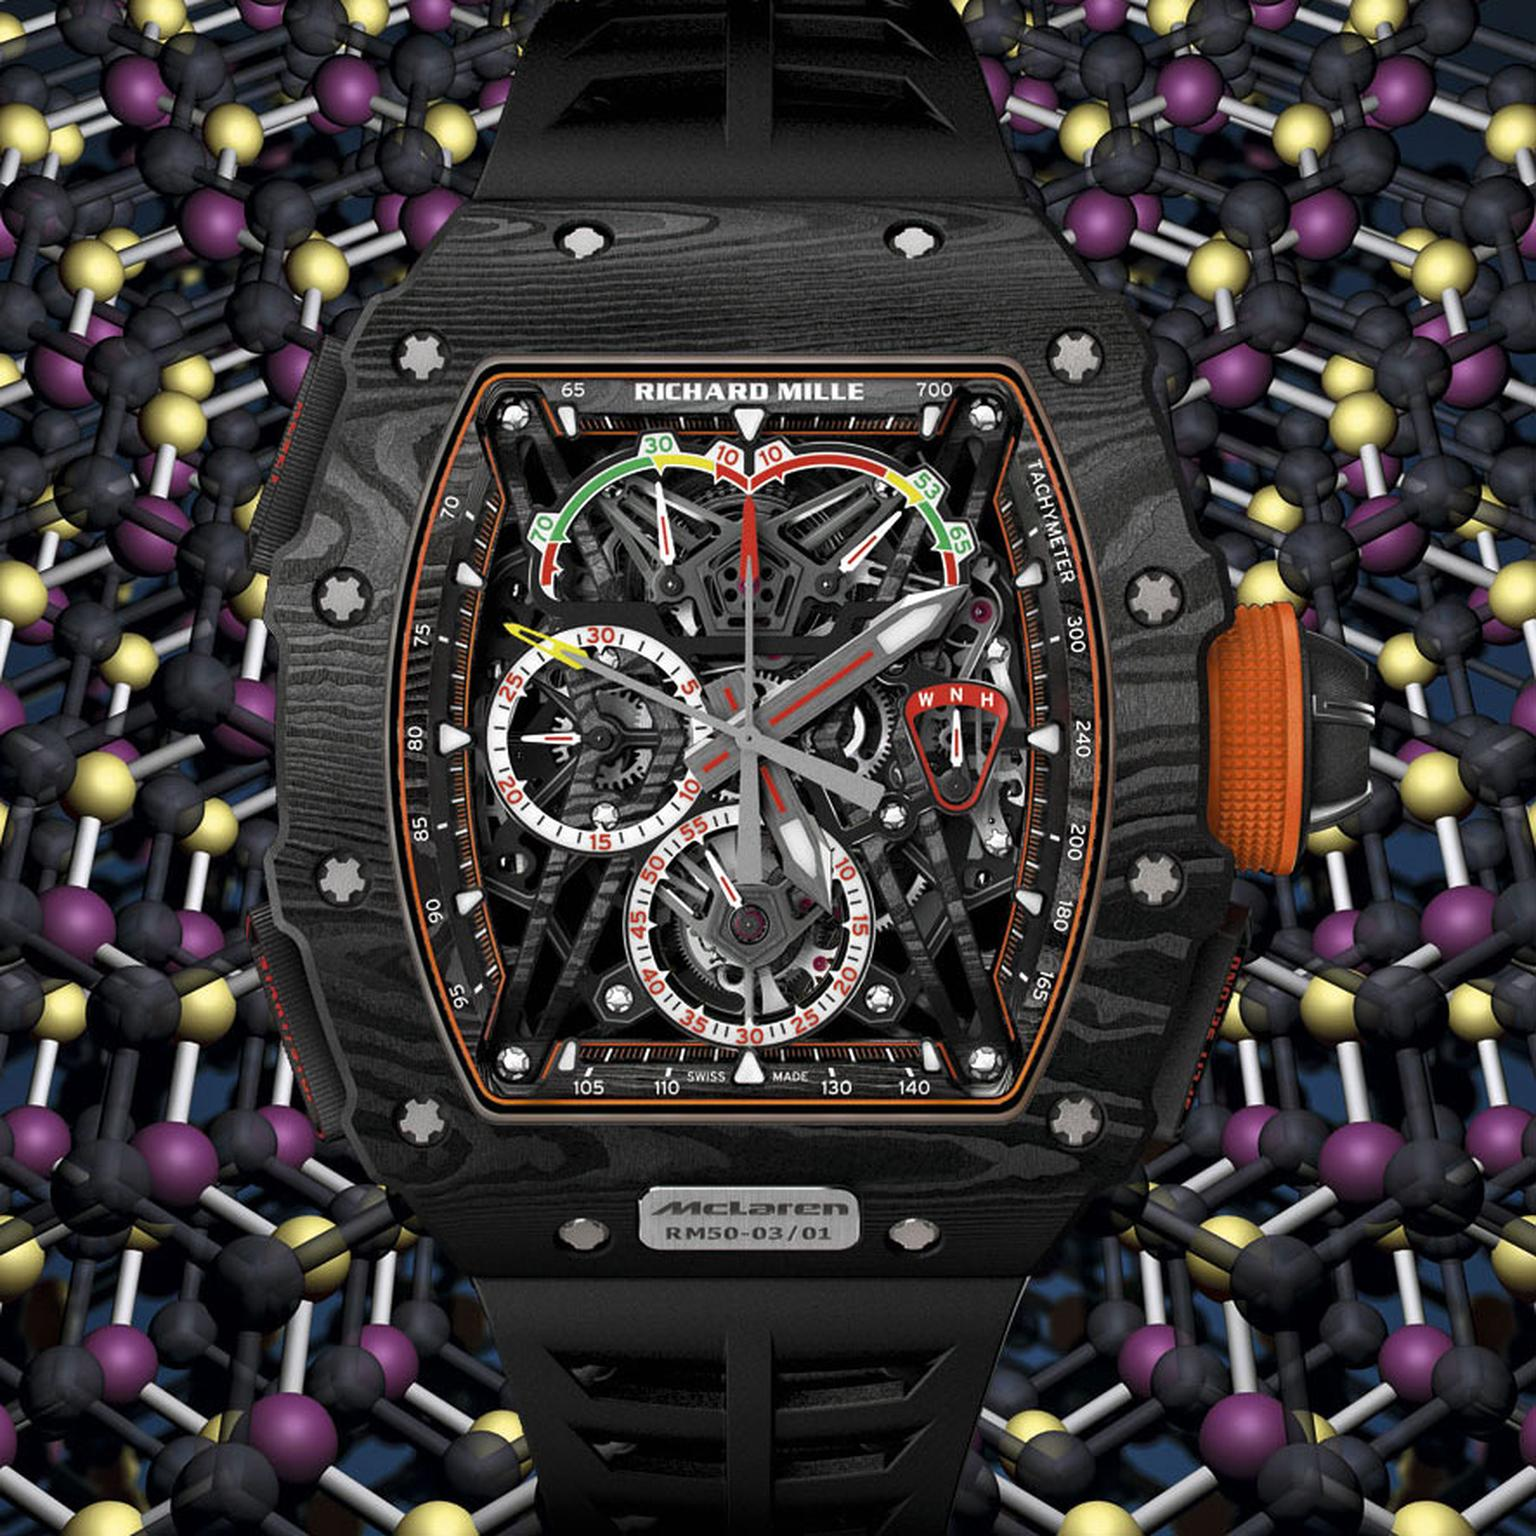 Richard Mille RM 50-03 McLaren F1 watch frontview